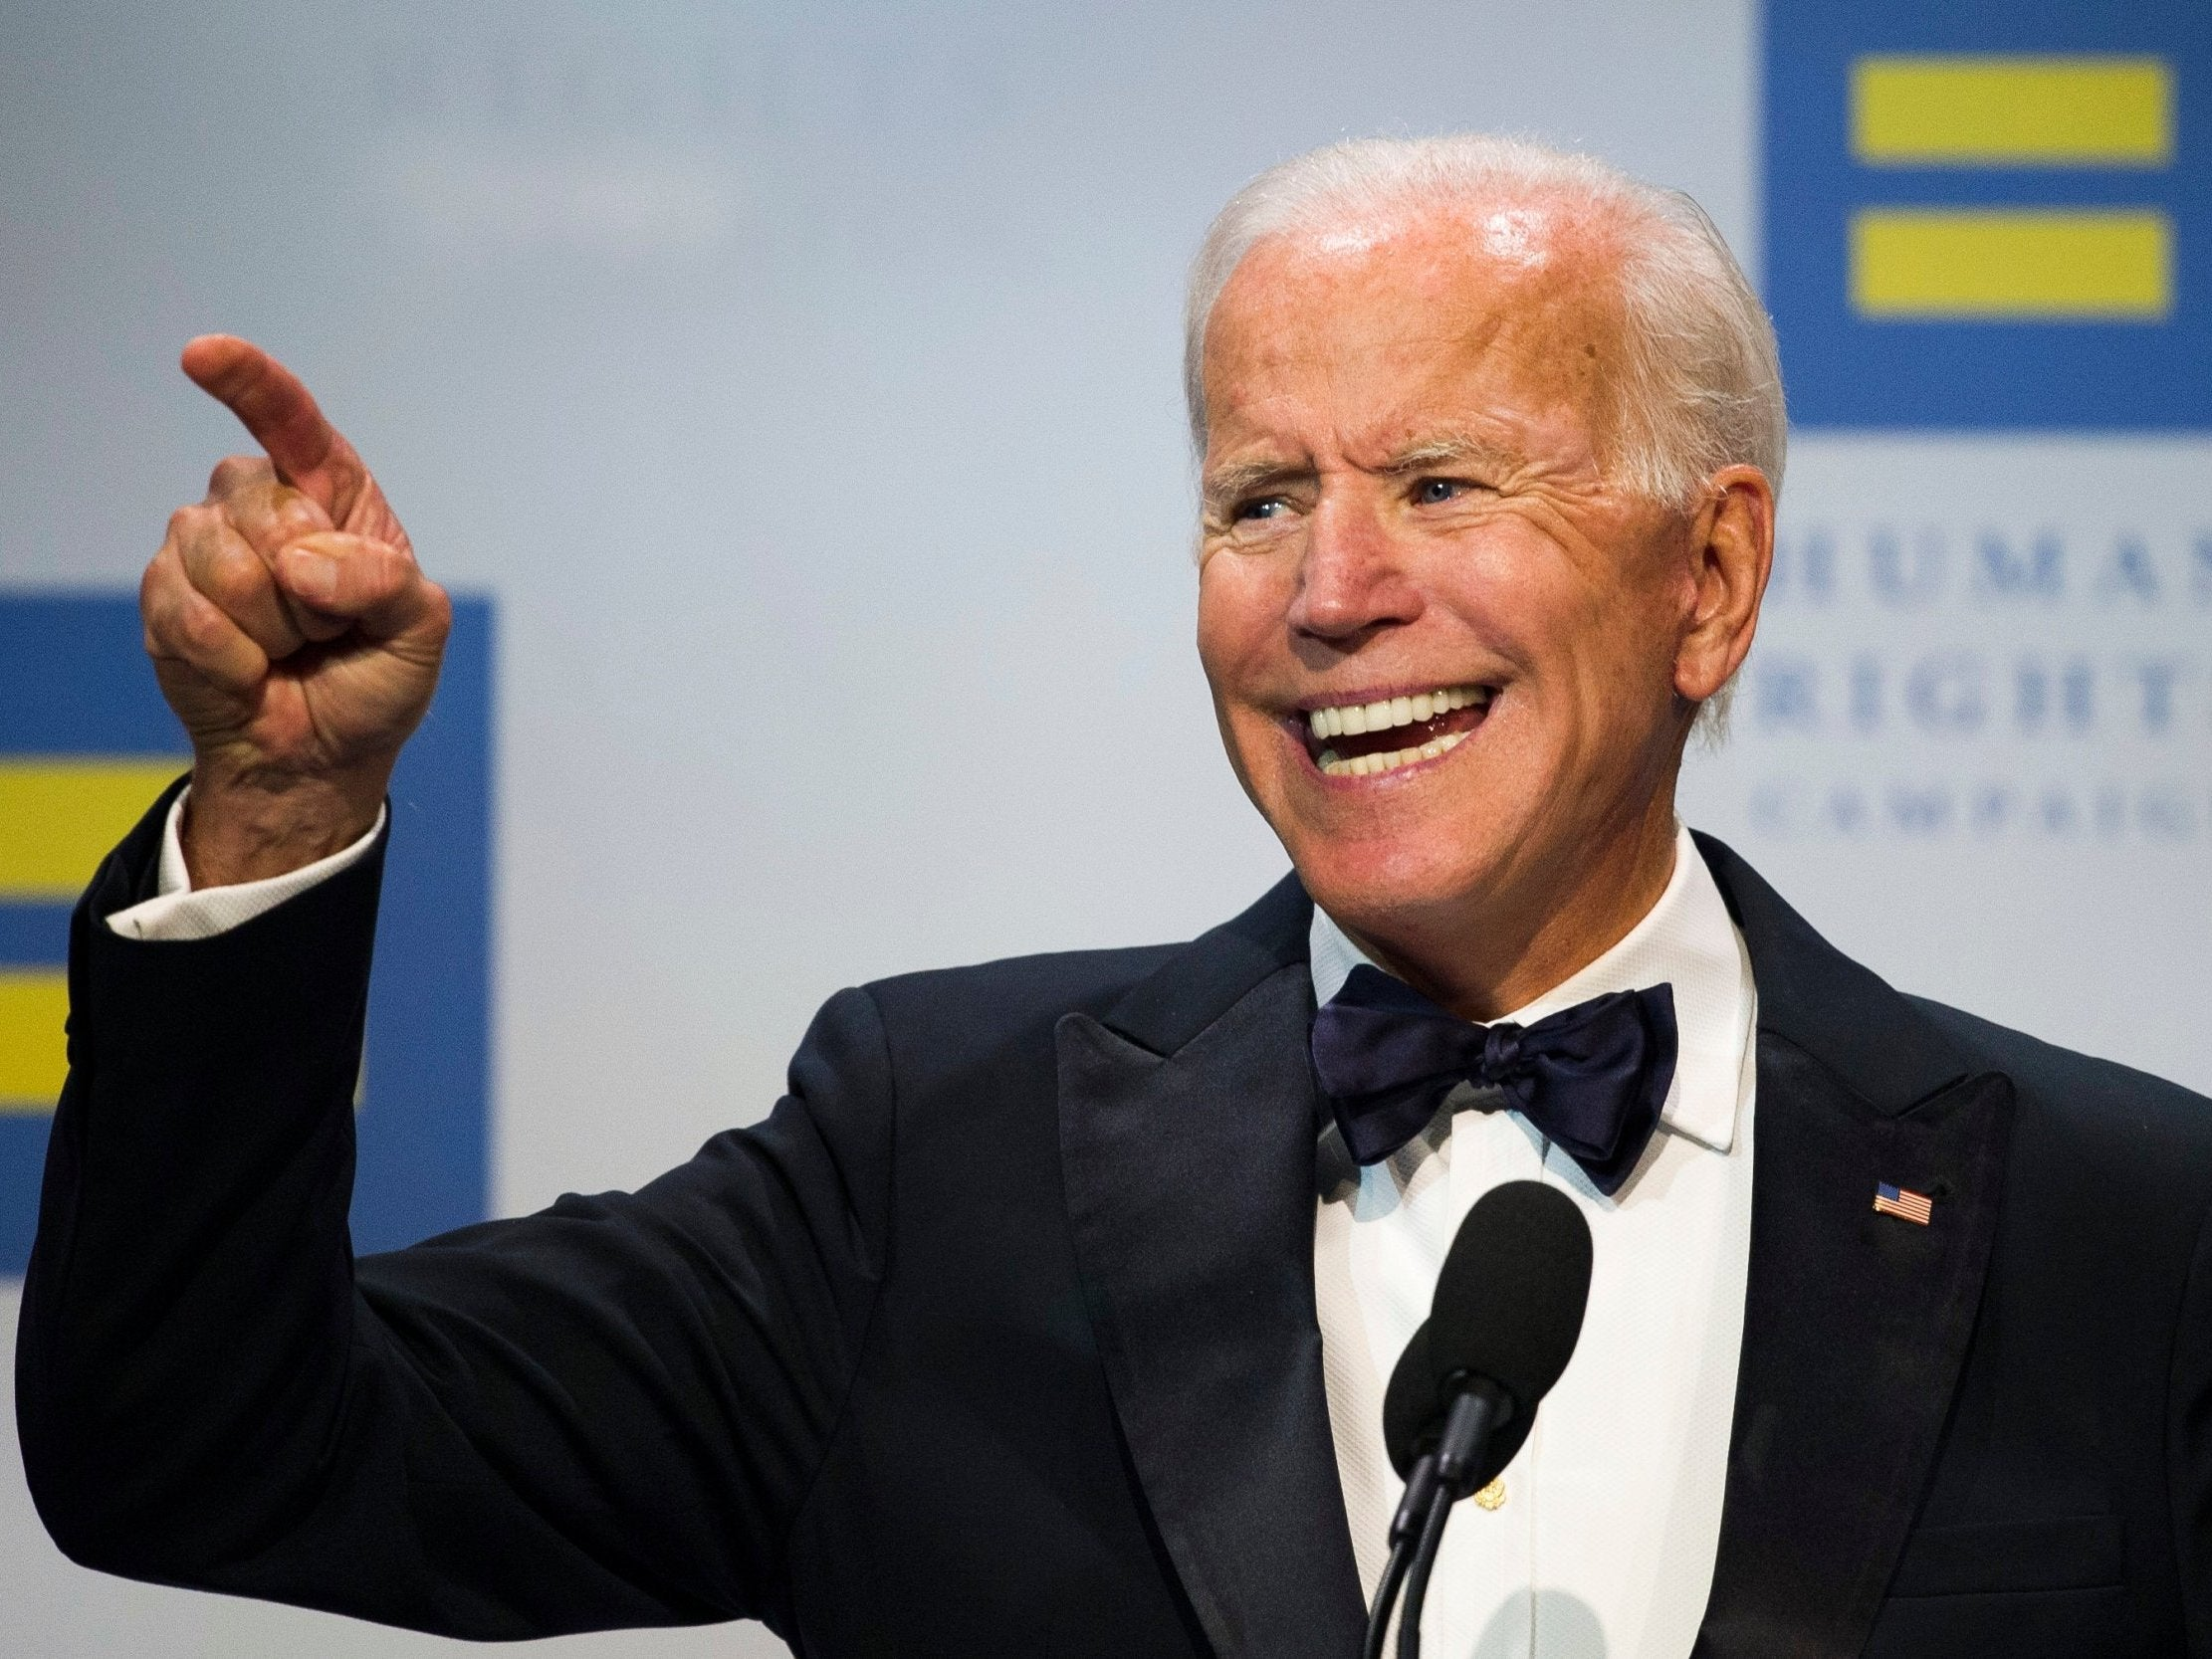 Joe Biden has a strategy for the presidential run | The ...